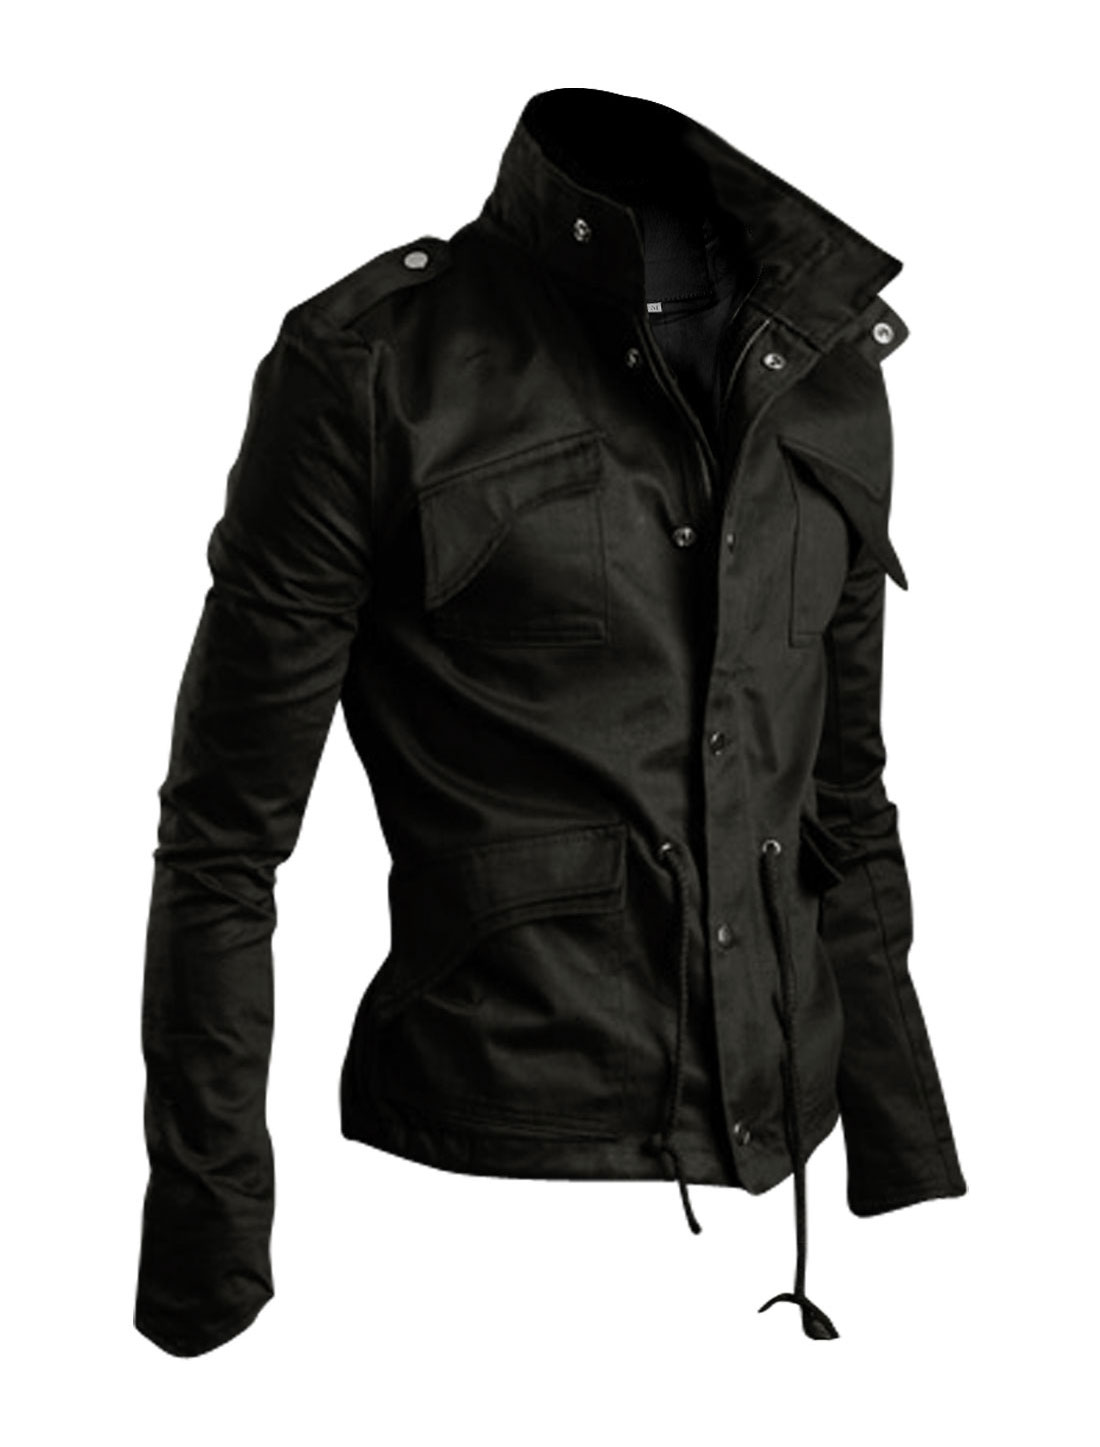 Mens Black Long-sleeved Flap Pockets Front Zip Up Autumn Jacket M